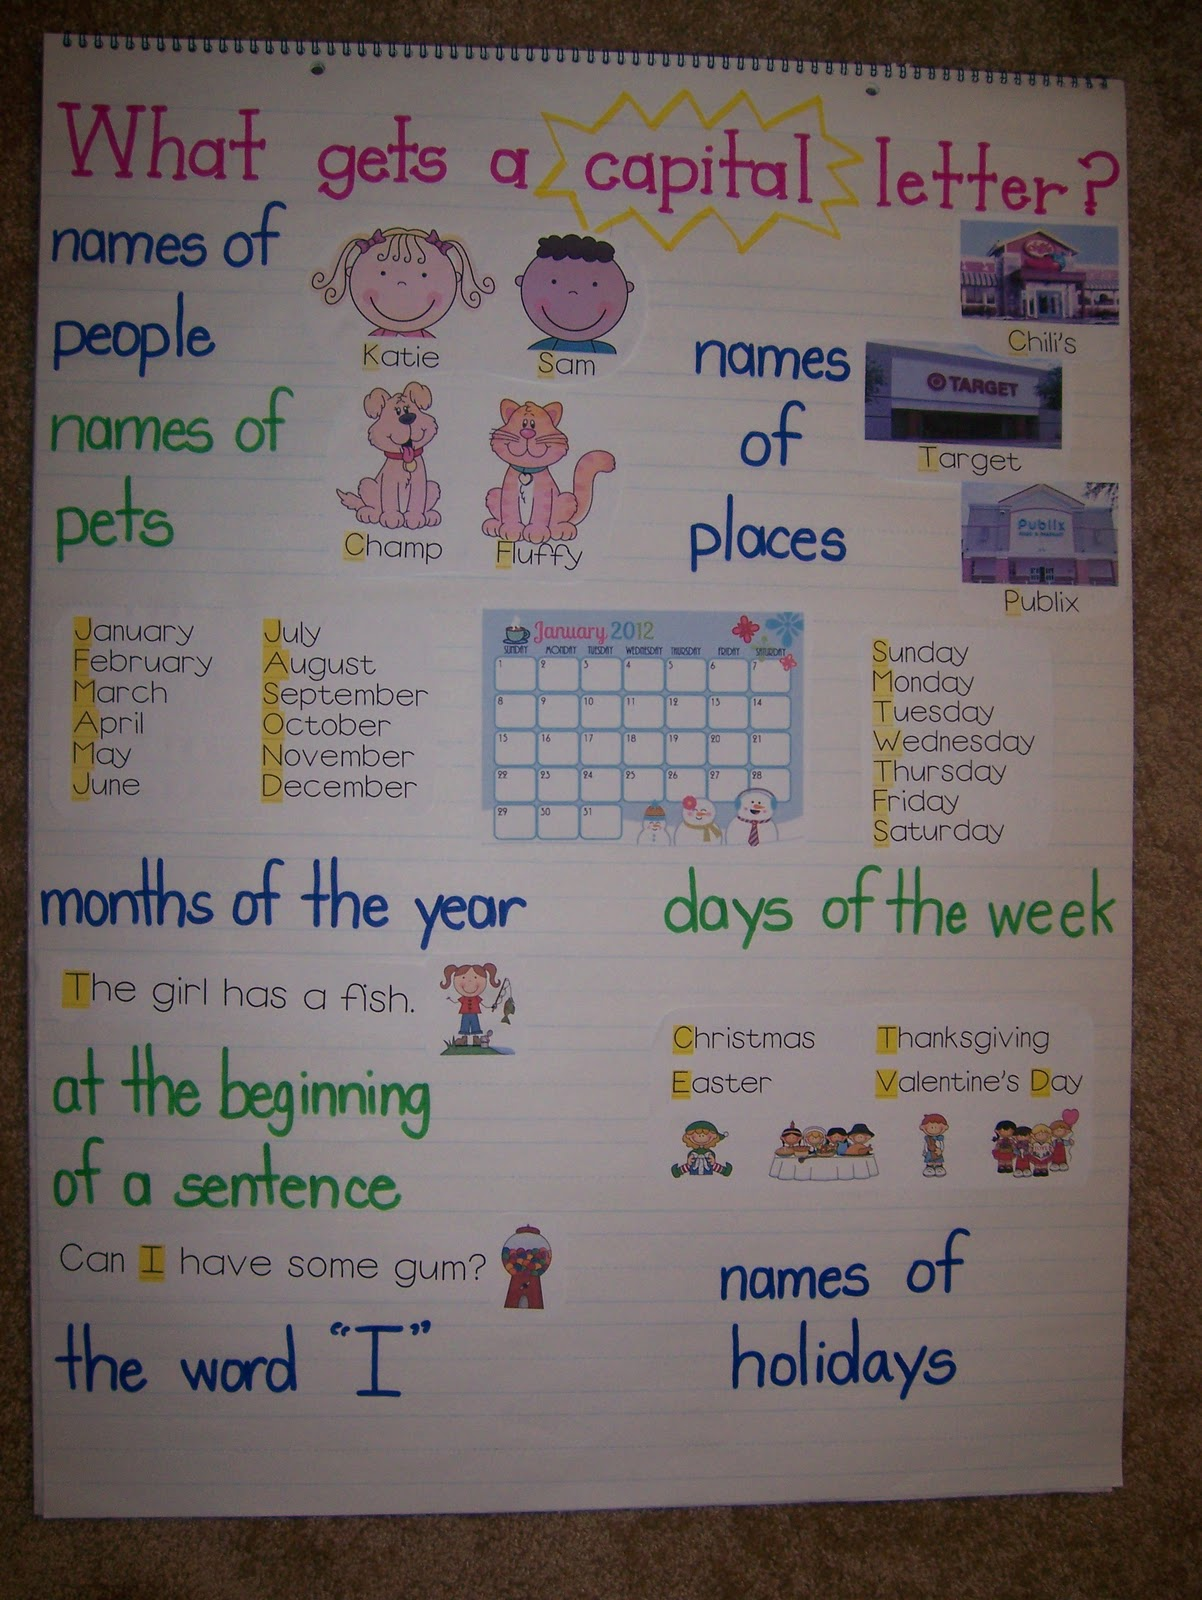 I Had Pinned A Couple Of Capital Letter Anchor Charts And Combined Things I Liked From Each To Make My Own Here Is How It Came Out